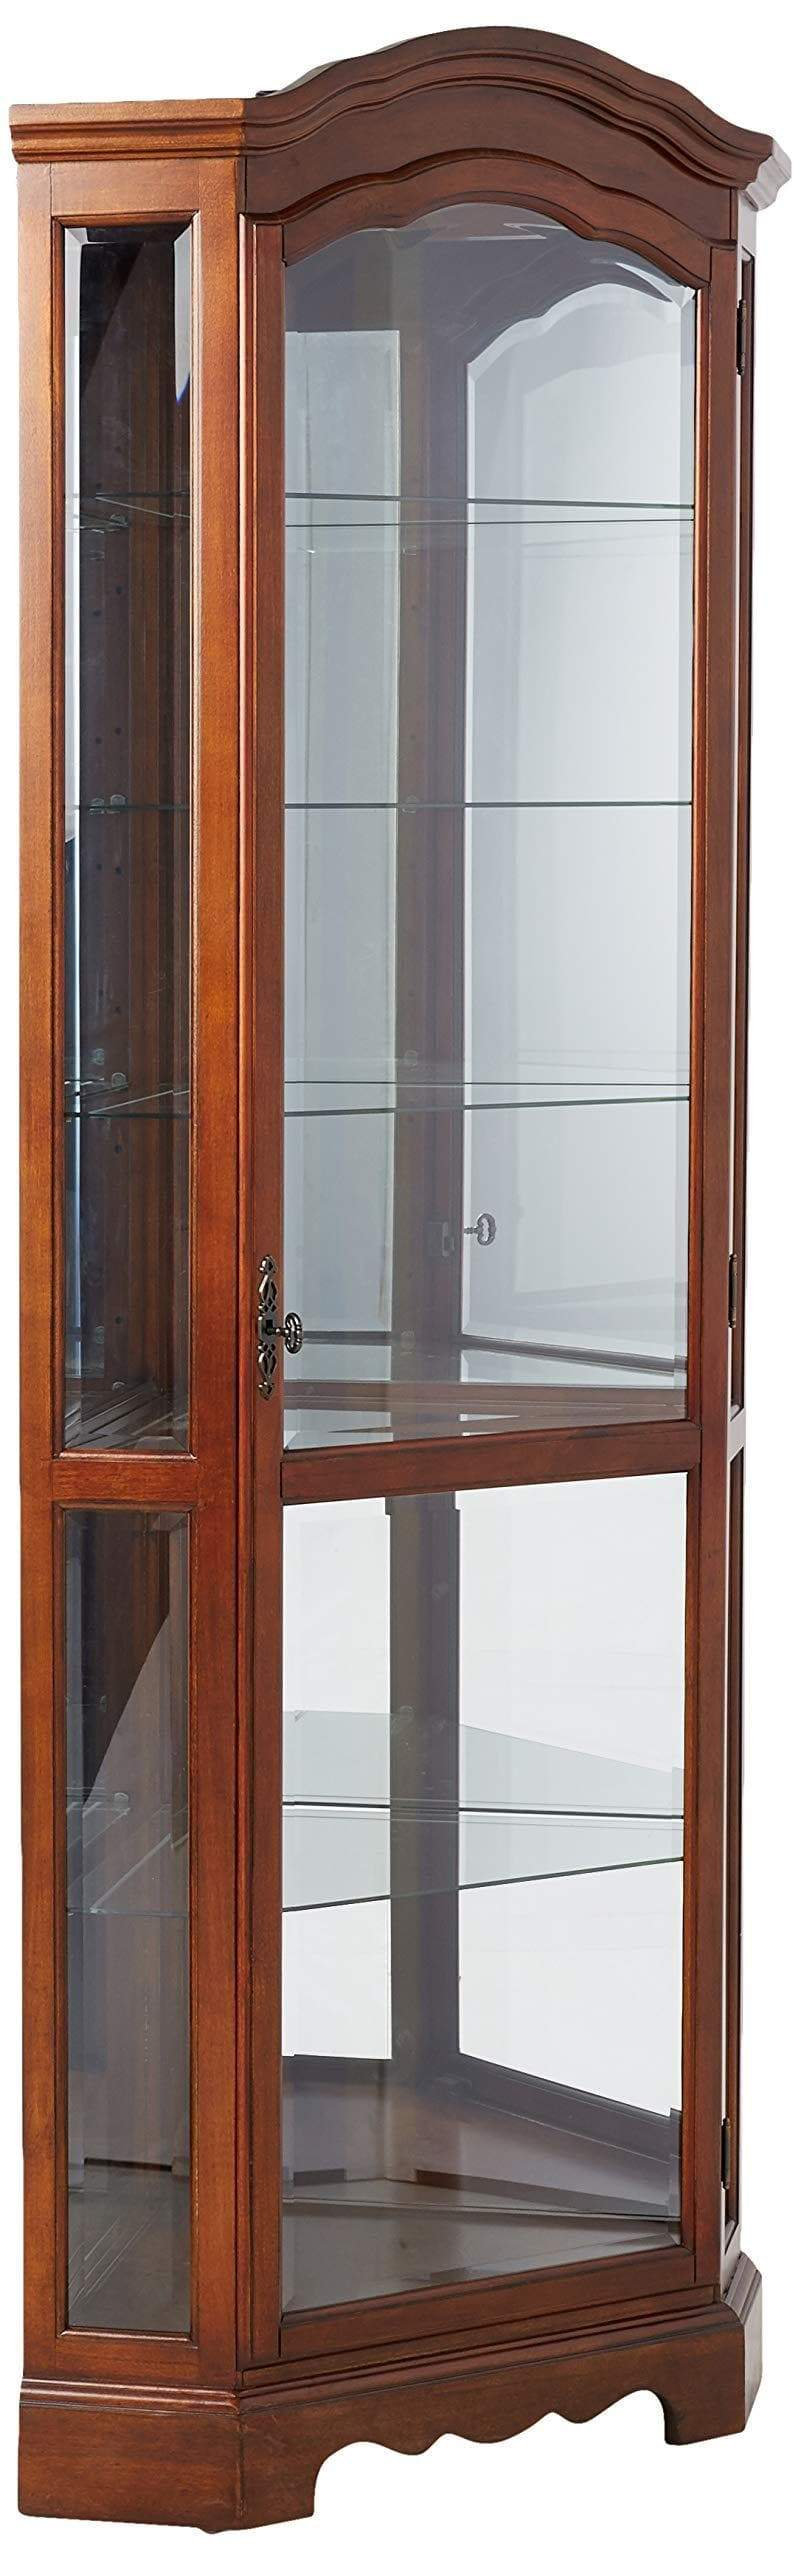 Cheap 5 shelf corner curio cabinet medium brown and clear